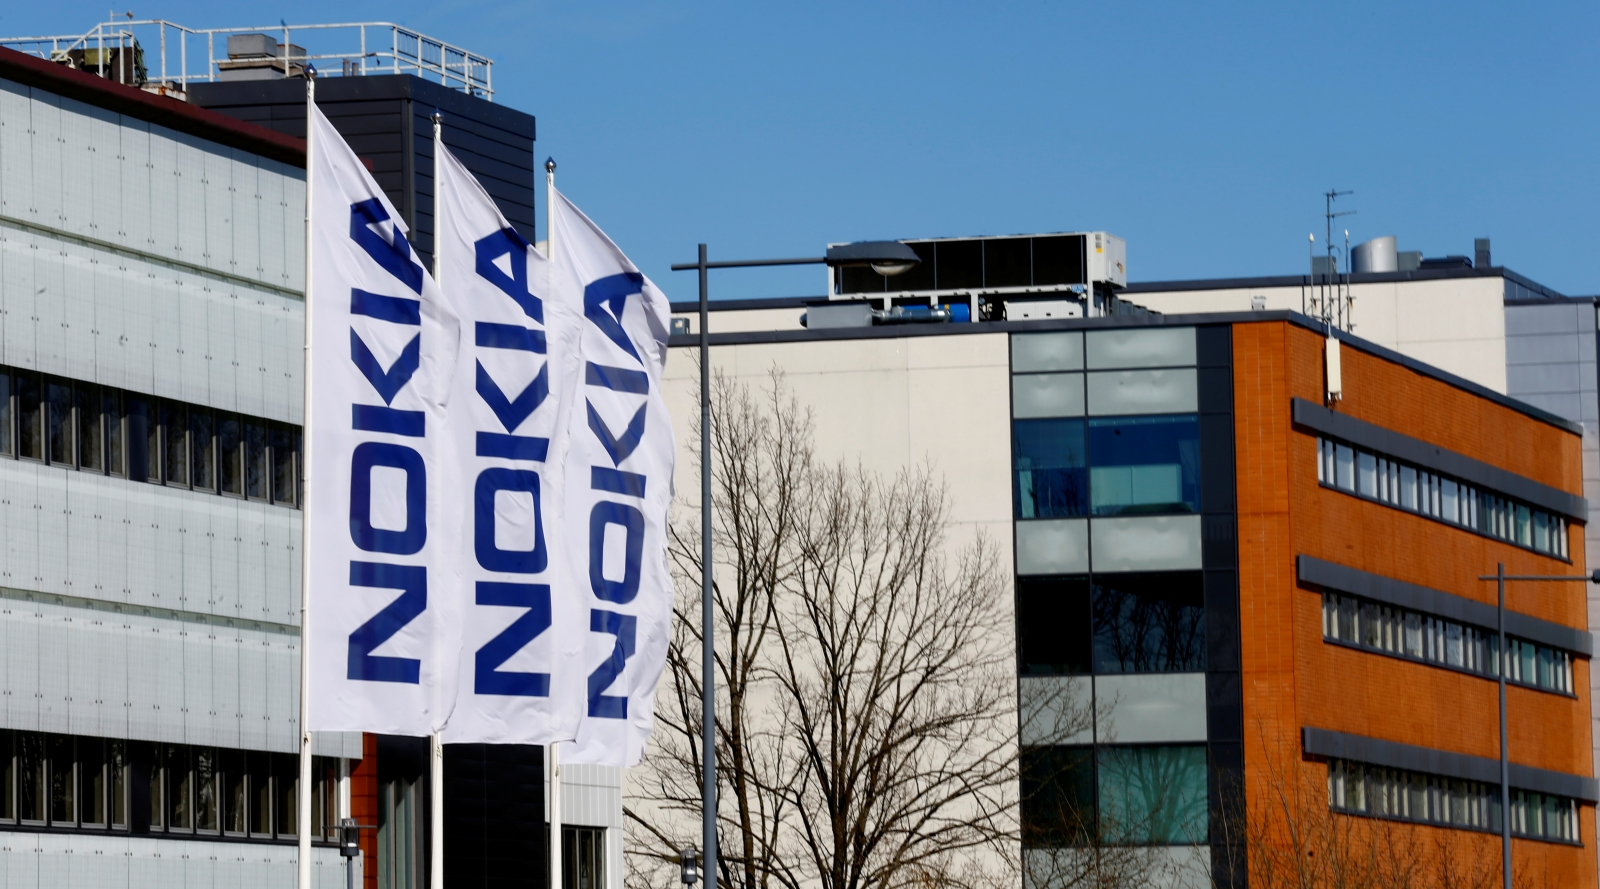 Nokia plans to sell Alcatel Submarine Networks